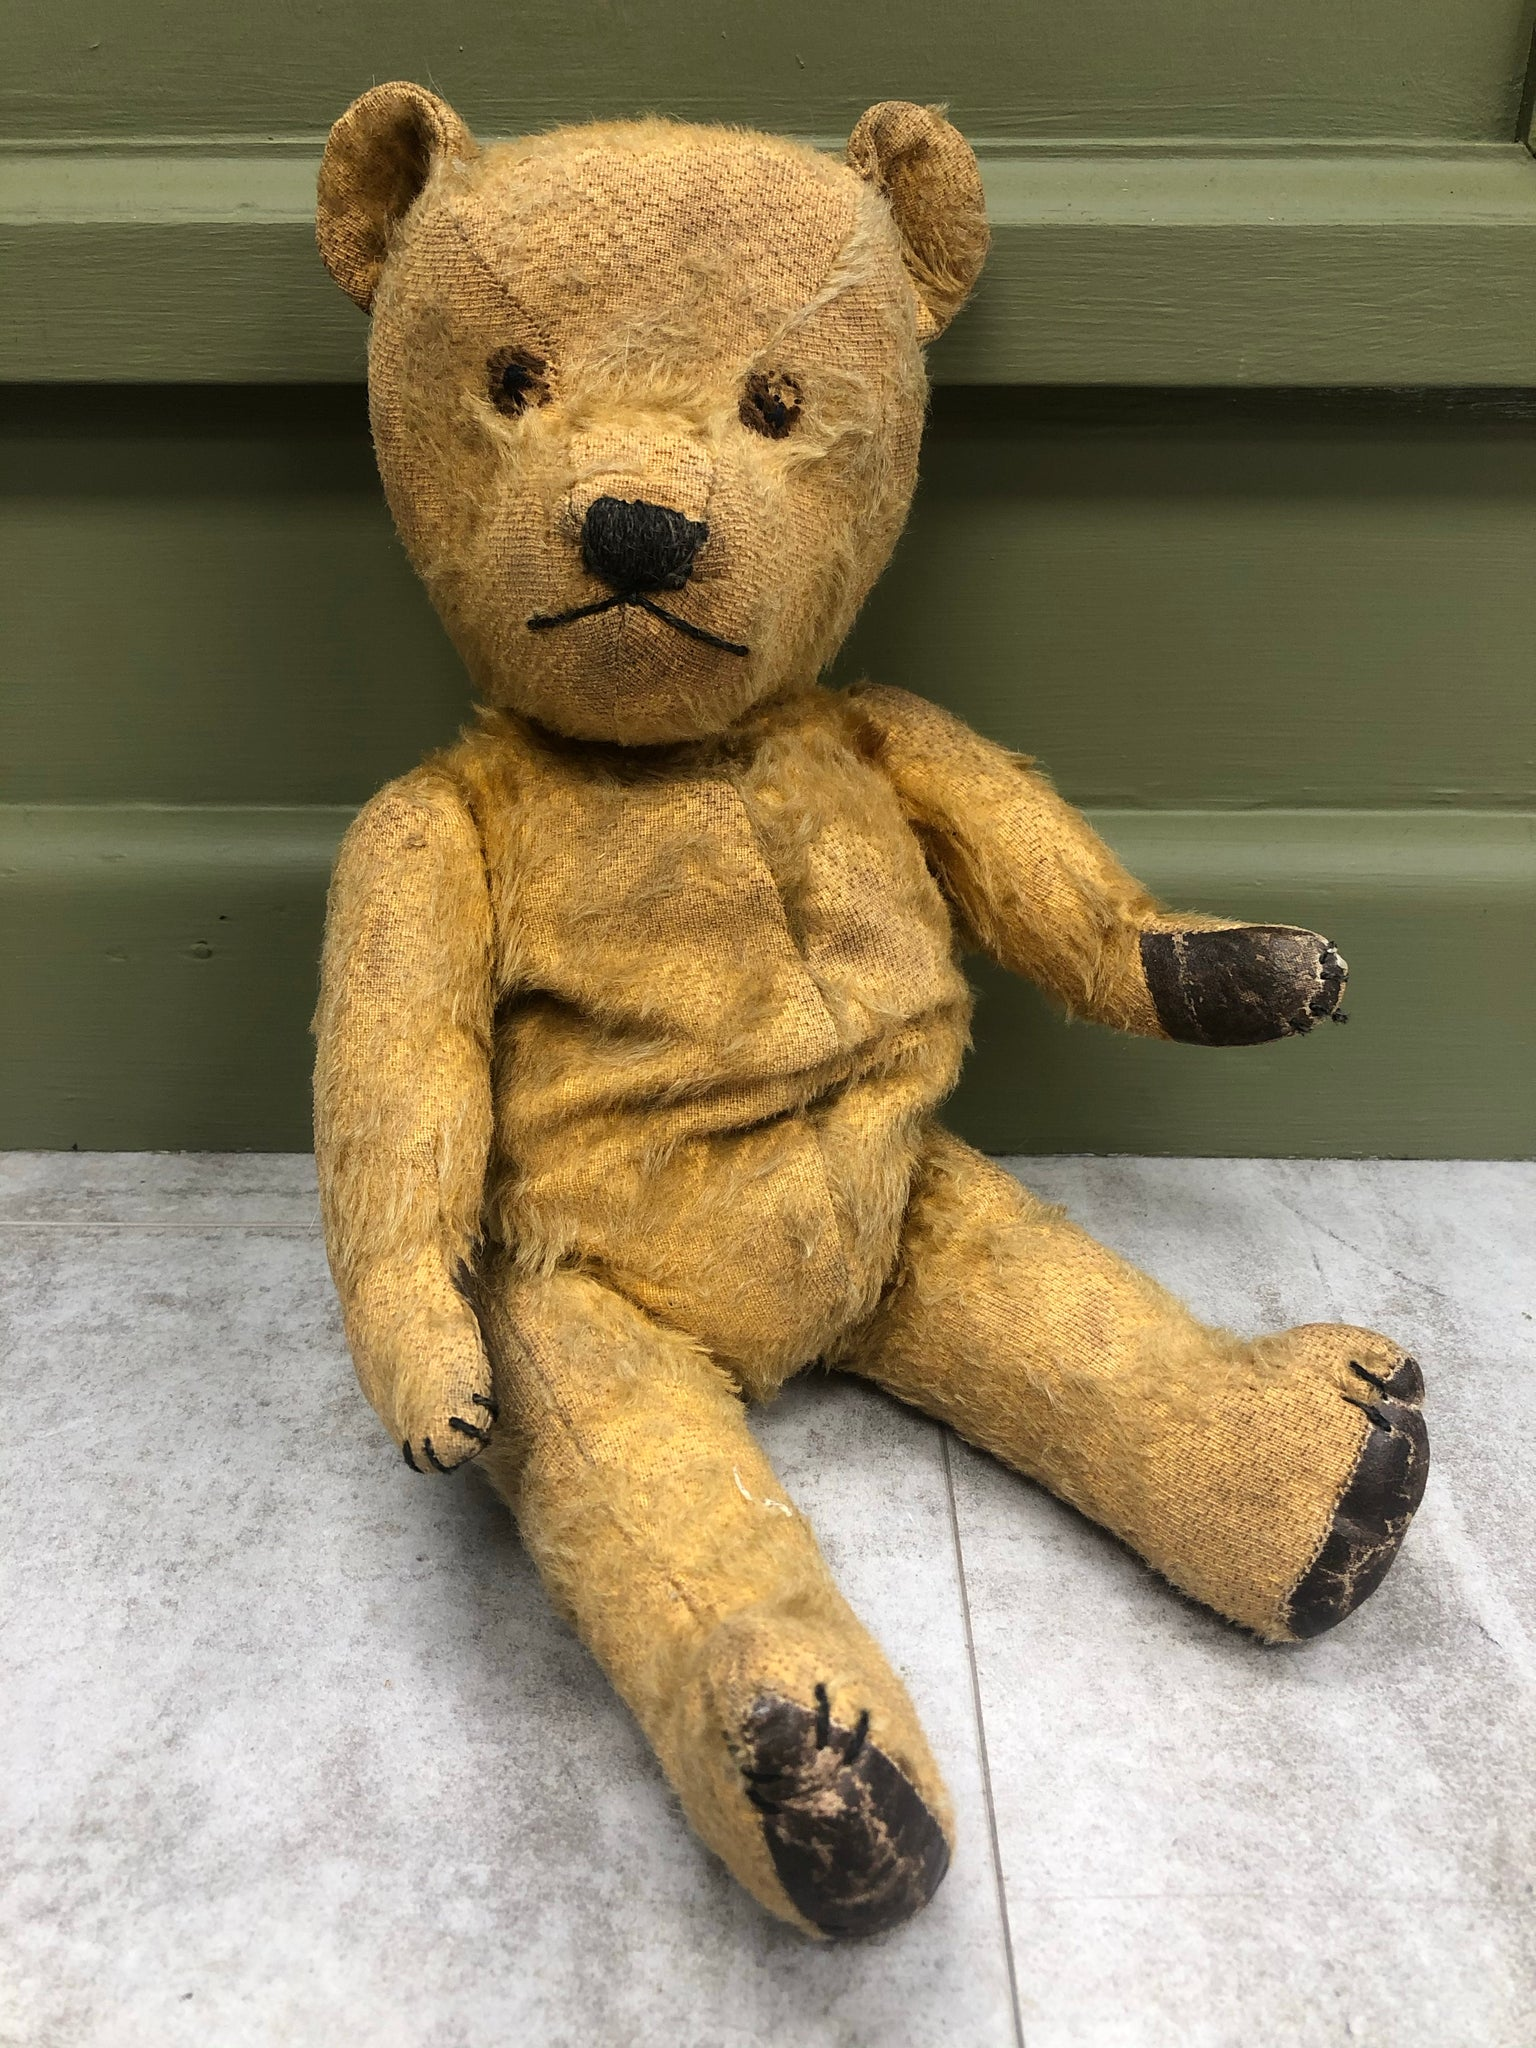 Early Stitched Eyed Growling Teddy Bear